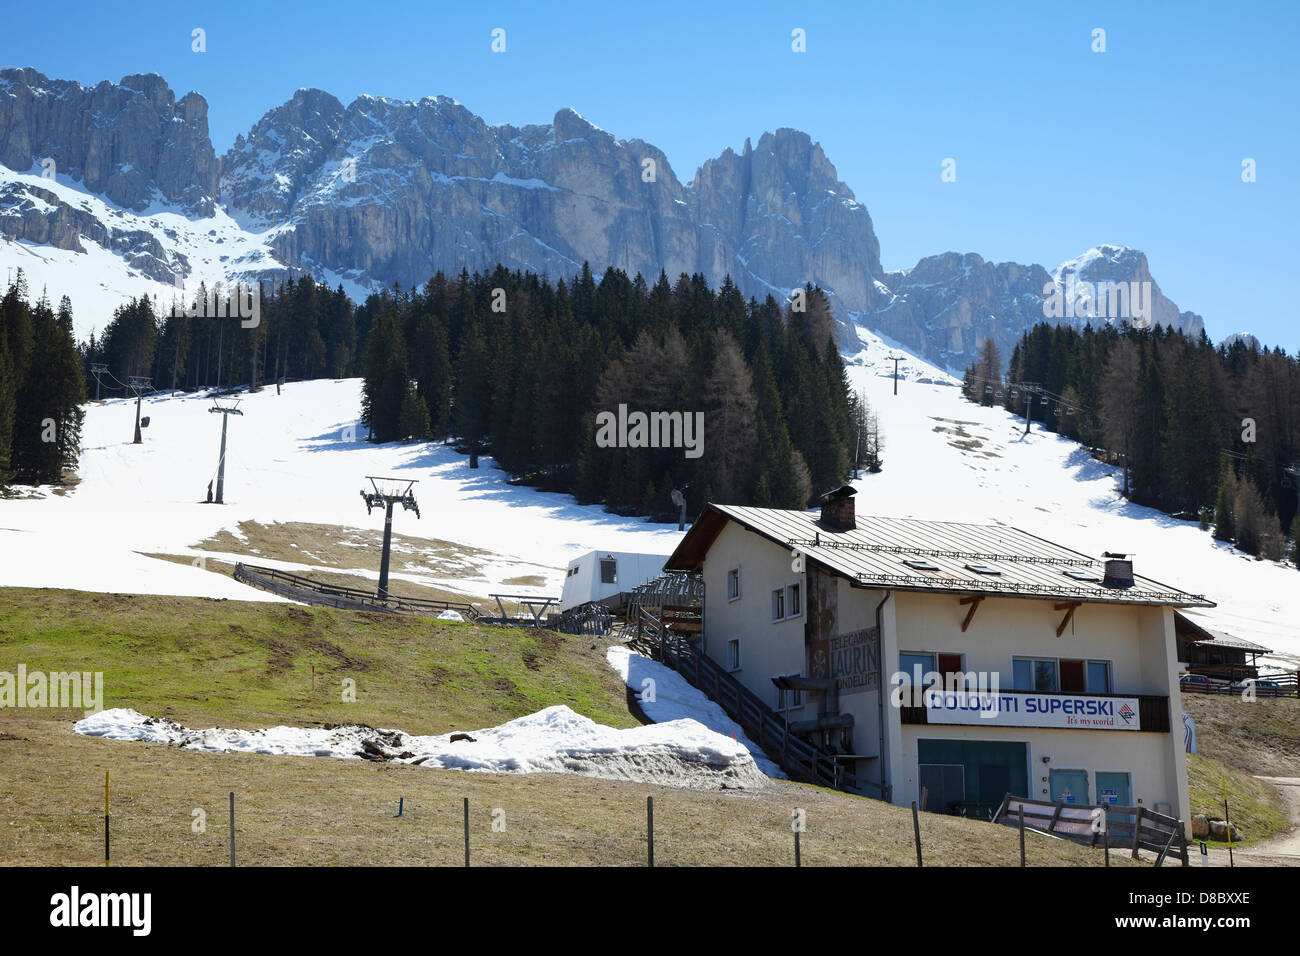 Lifts for skiing, South Tyrol,Dolomiti Superski - Stock Image